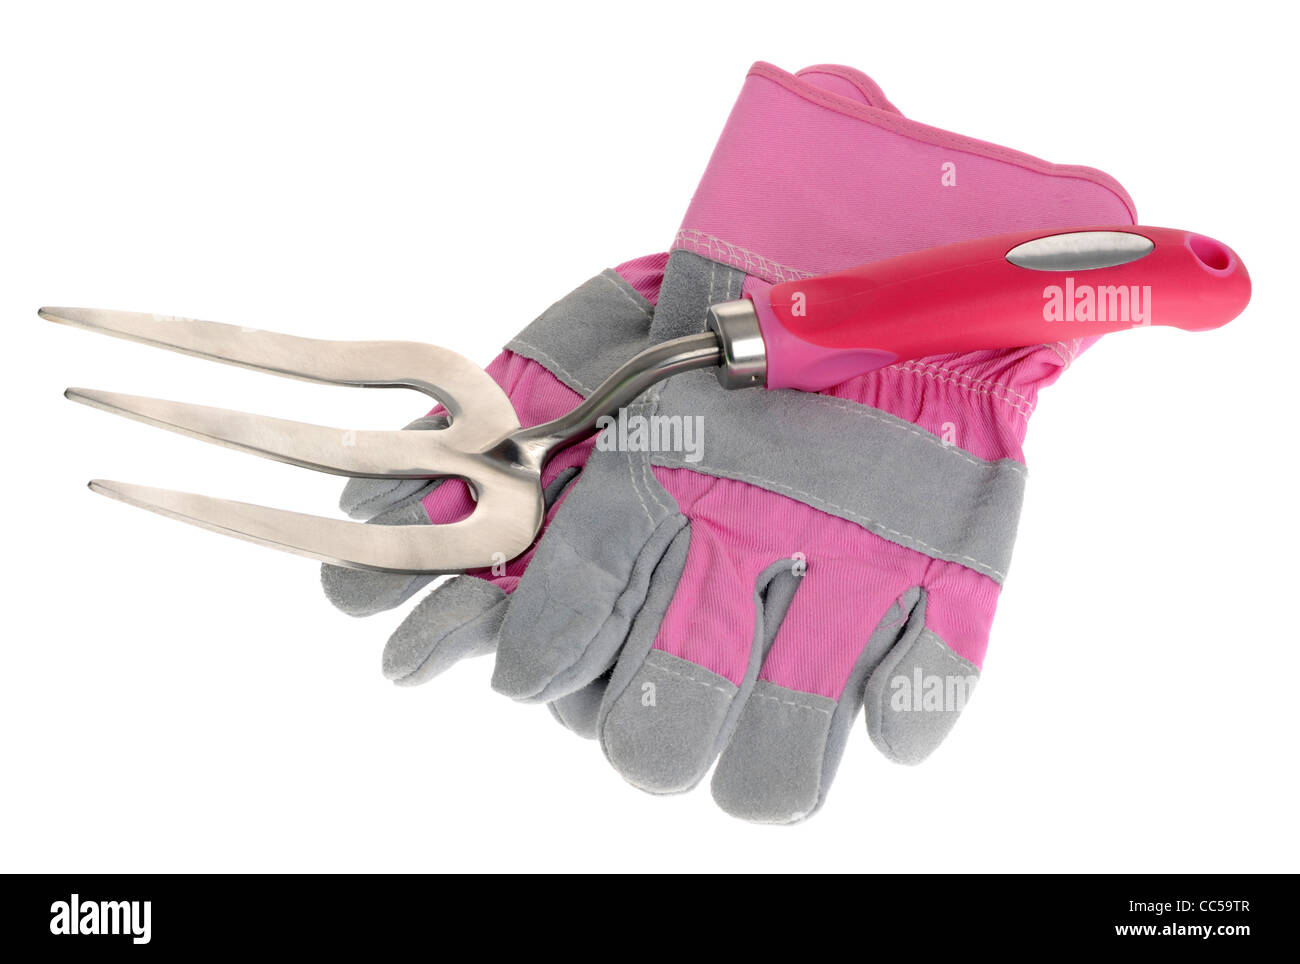 Pink gardening gloves and small gardening fork on a white background - Stock Image